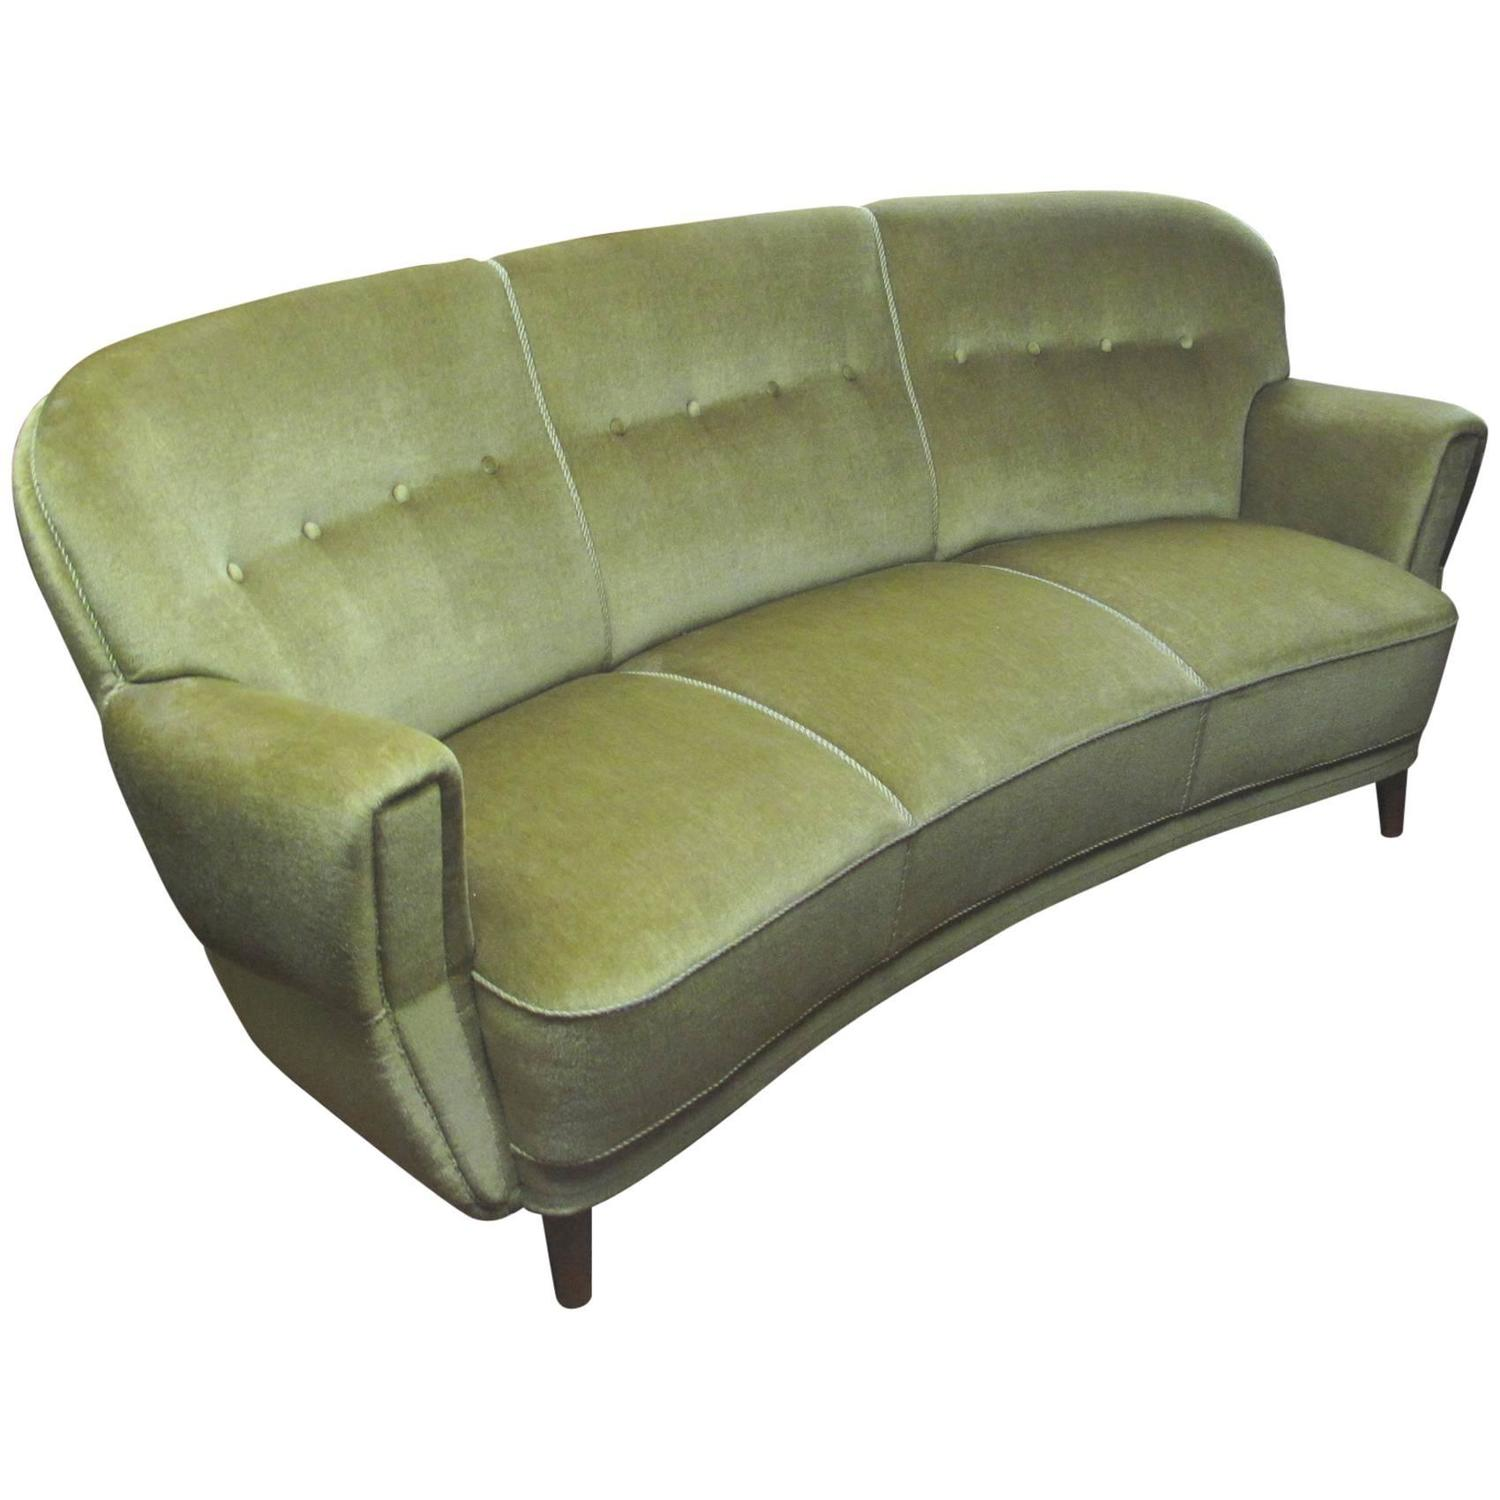 High Quality Danish 1930s 1940s Curved Mohair Upholstered Sofa At 1stdibs